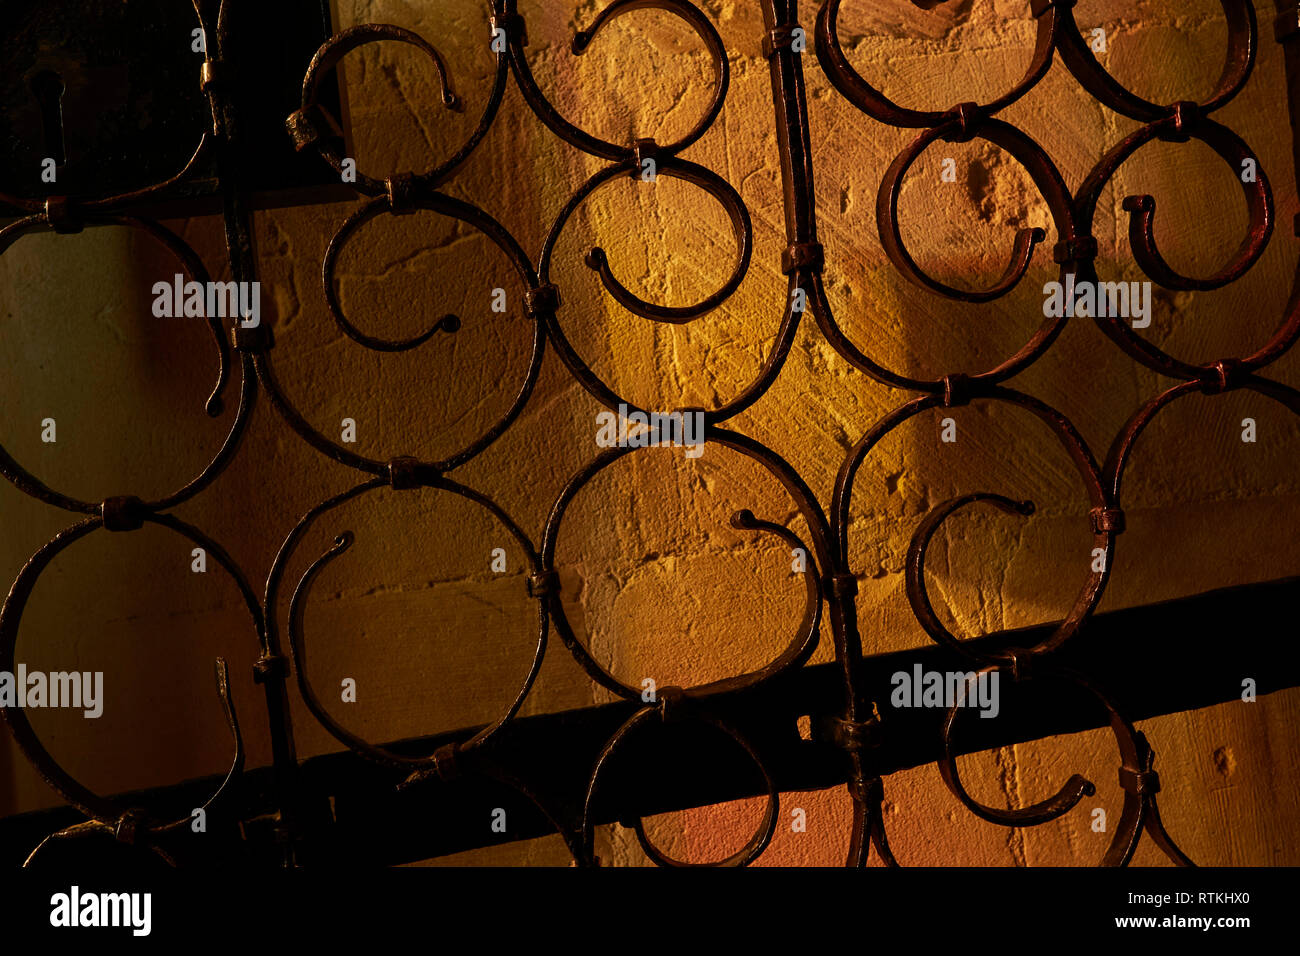 Abstract metal swirl patterns against warm stone background - Stock Image